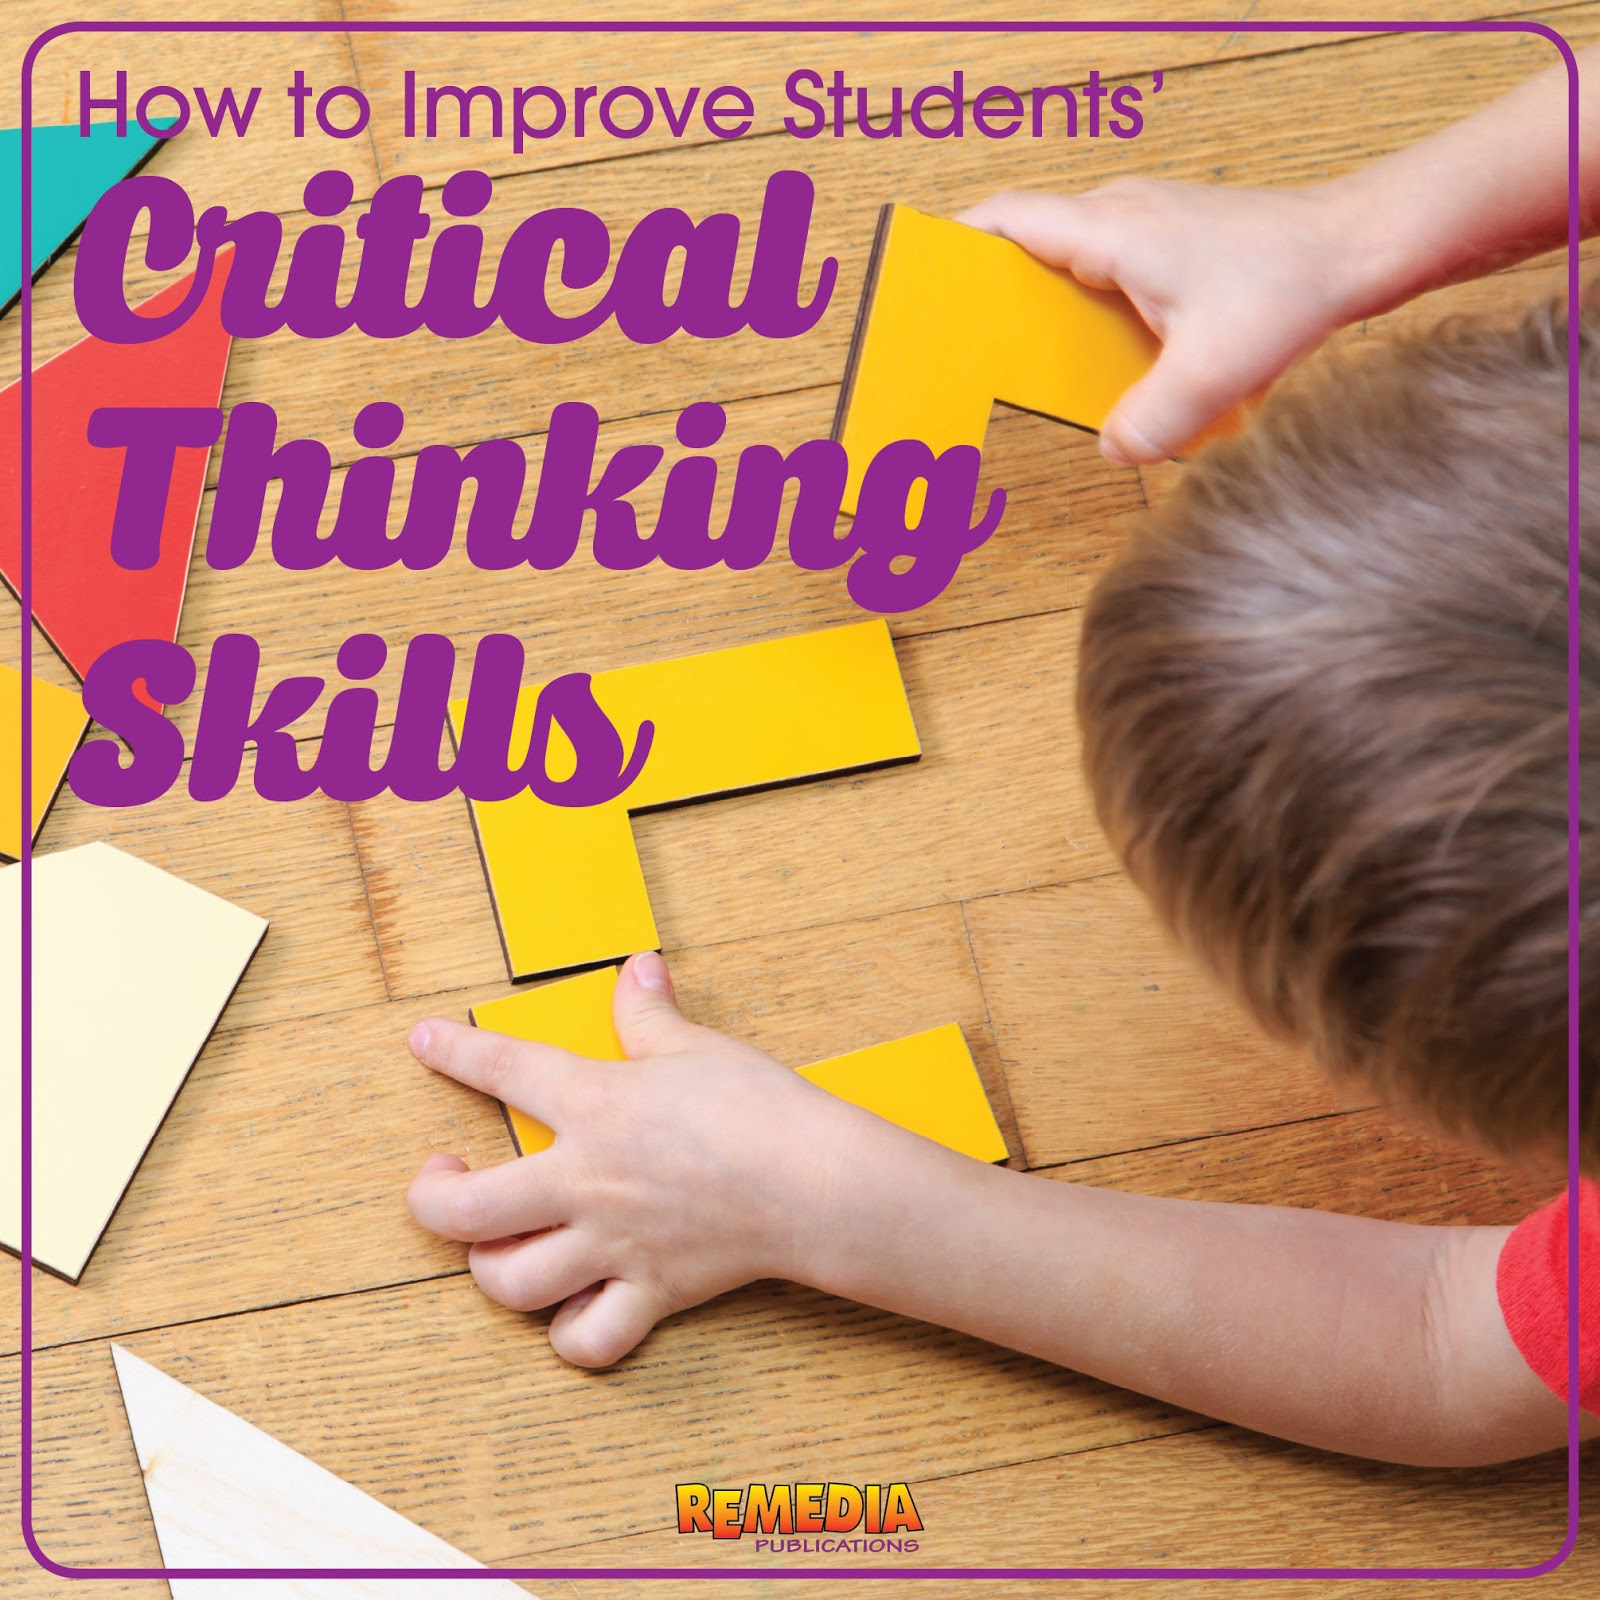 Worksheet Remedia Publications Free Worksheets remedia publications how to improve students critical thinking skills publications